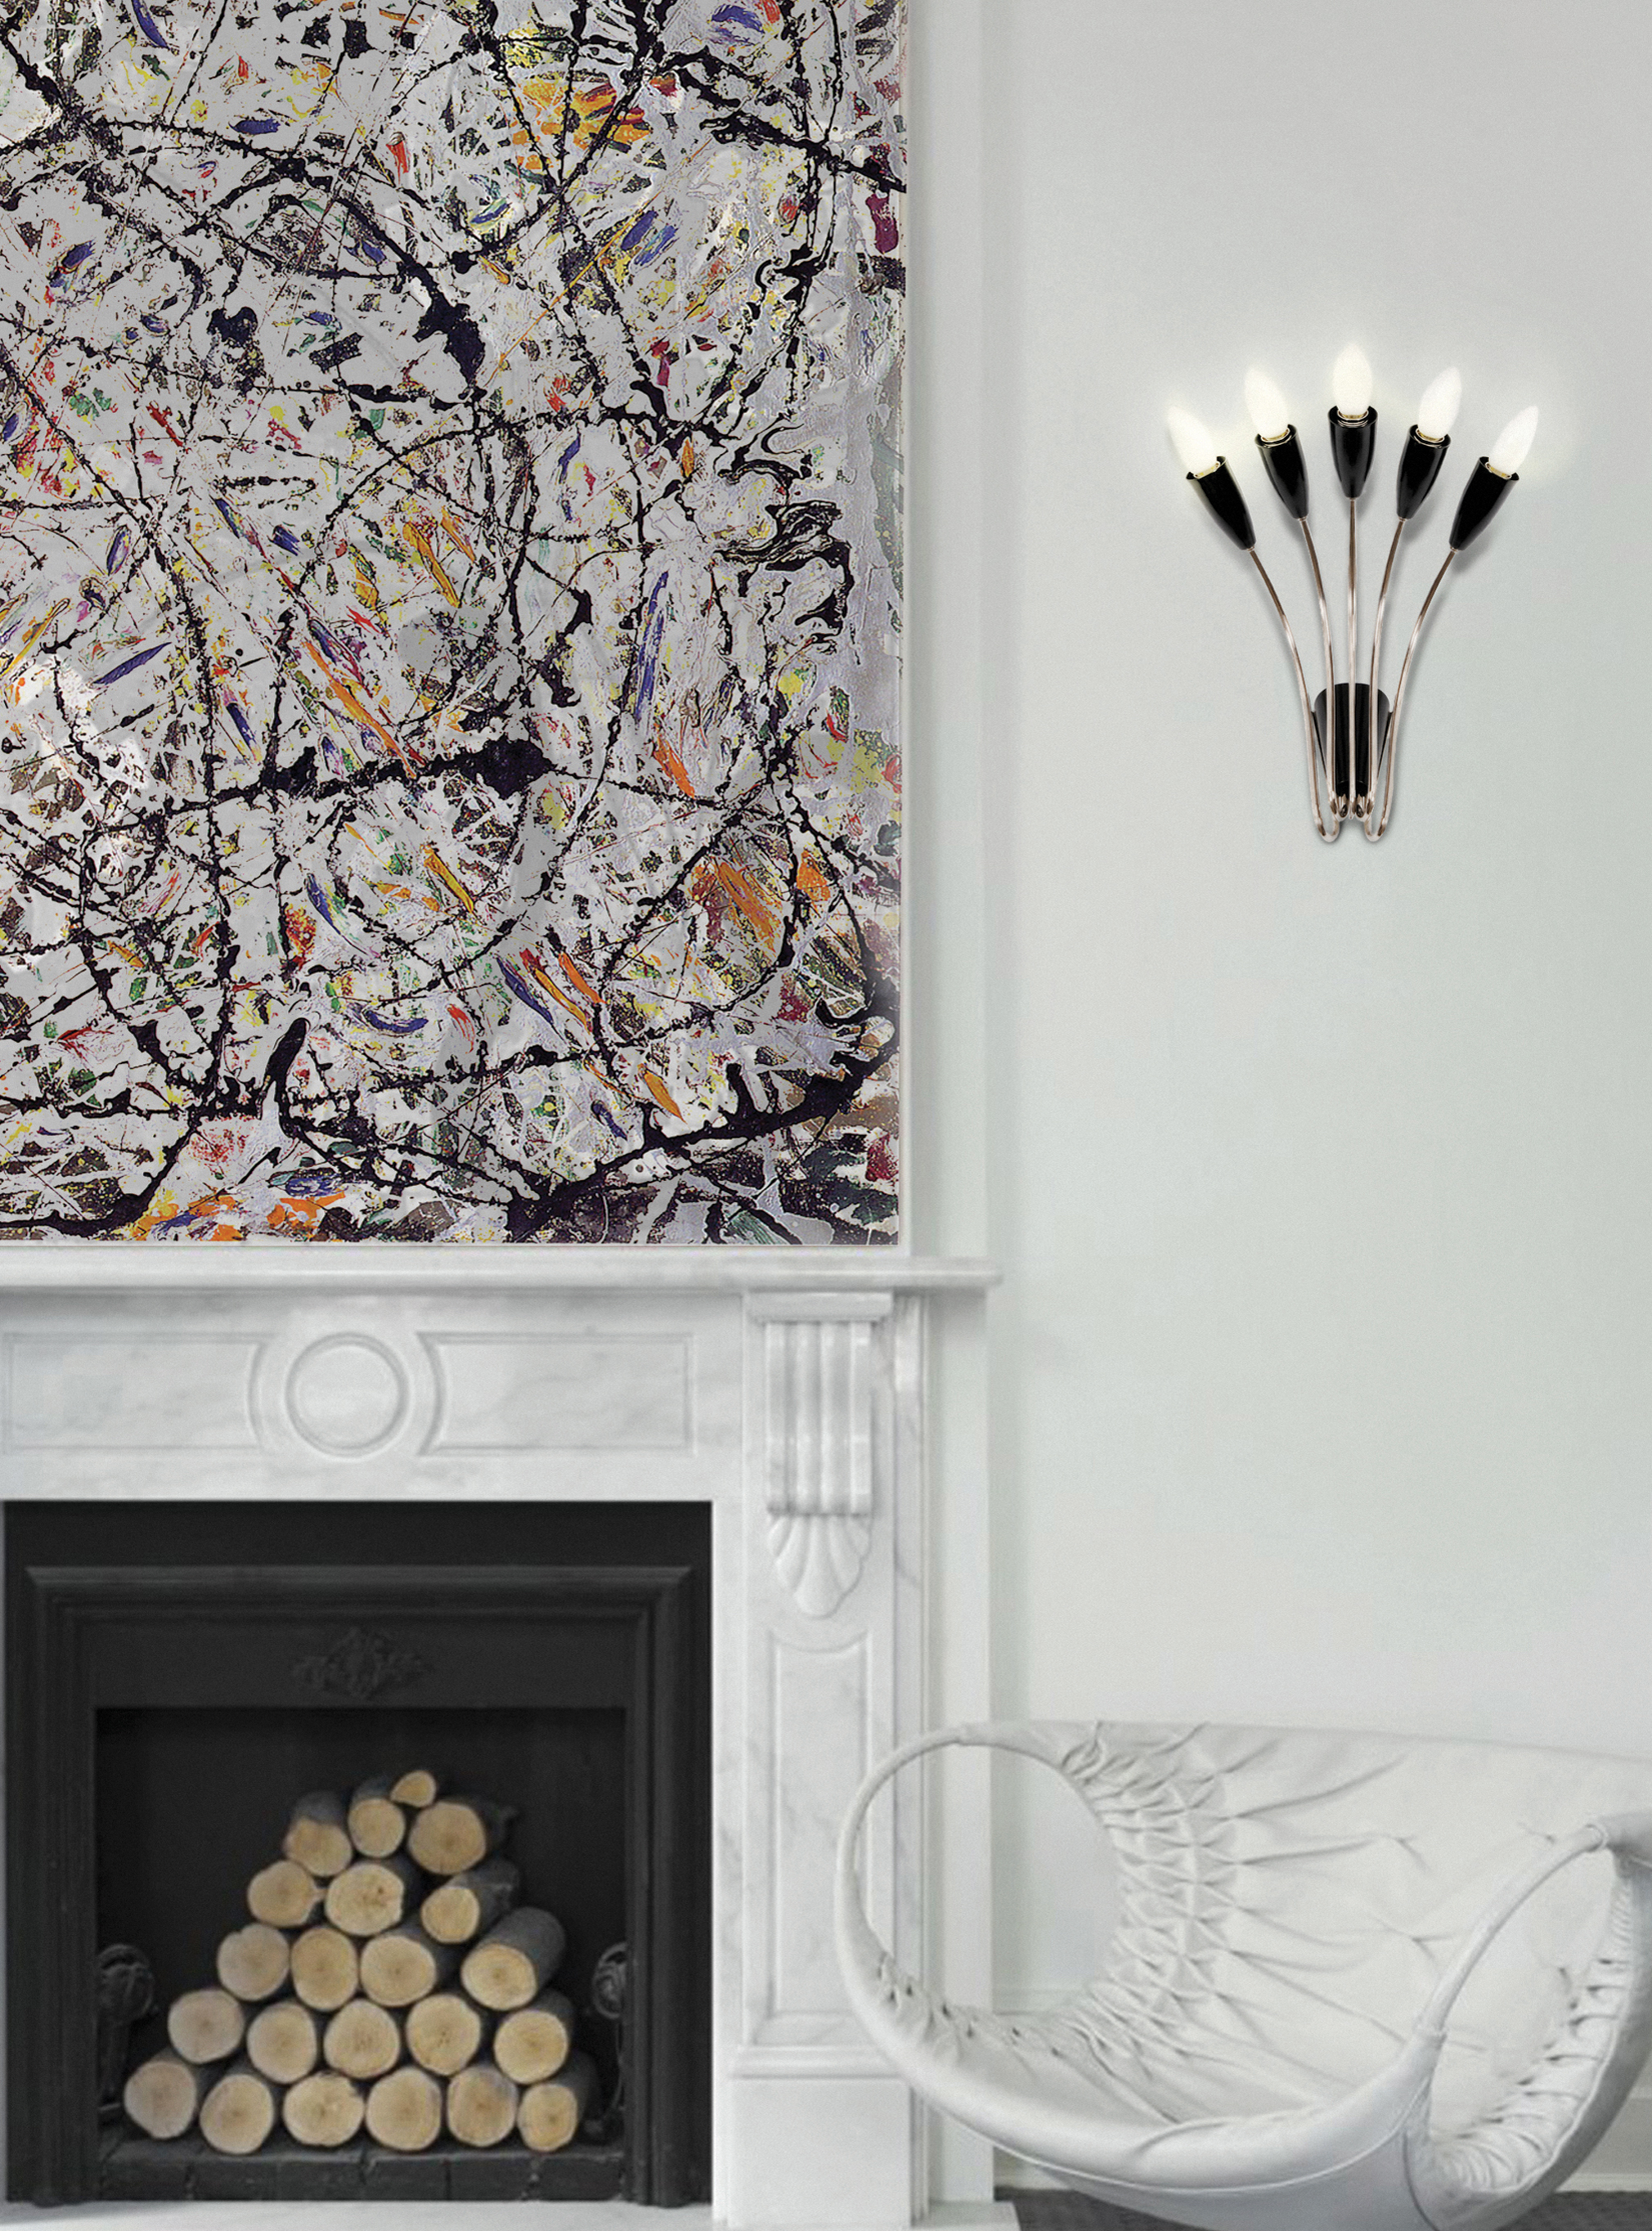 Norah wall lamp by Delightfull wall lamps Top 20 luxury wall lamps 8a delightfull norah 01